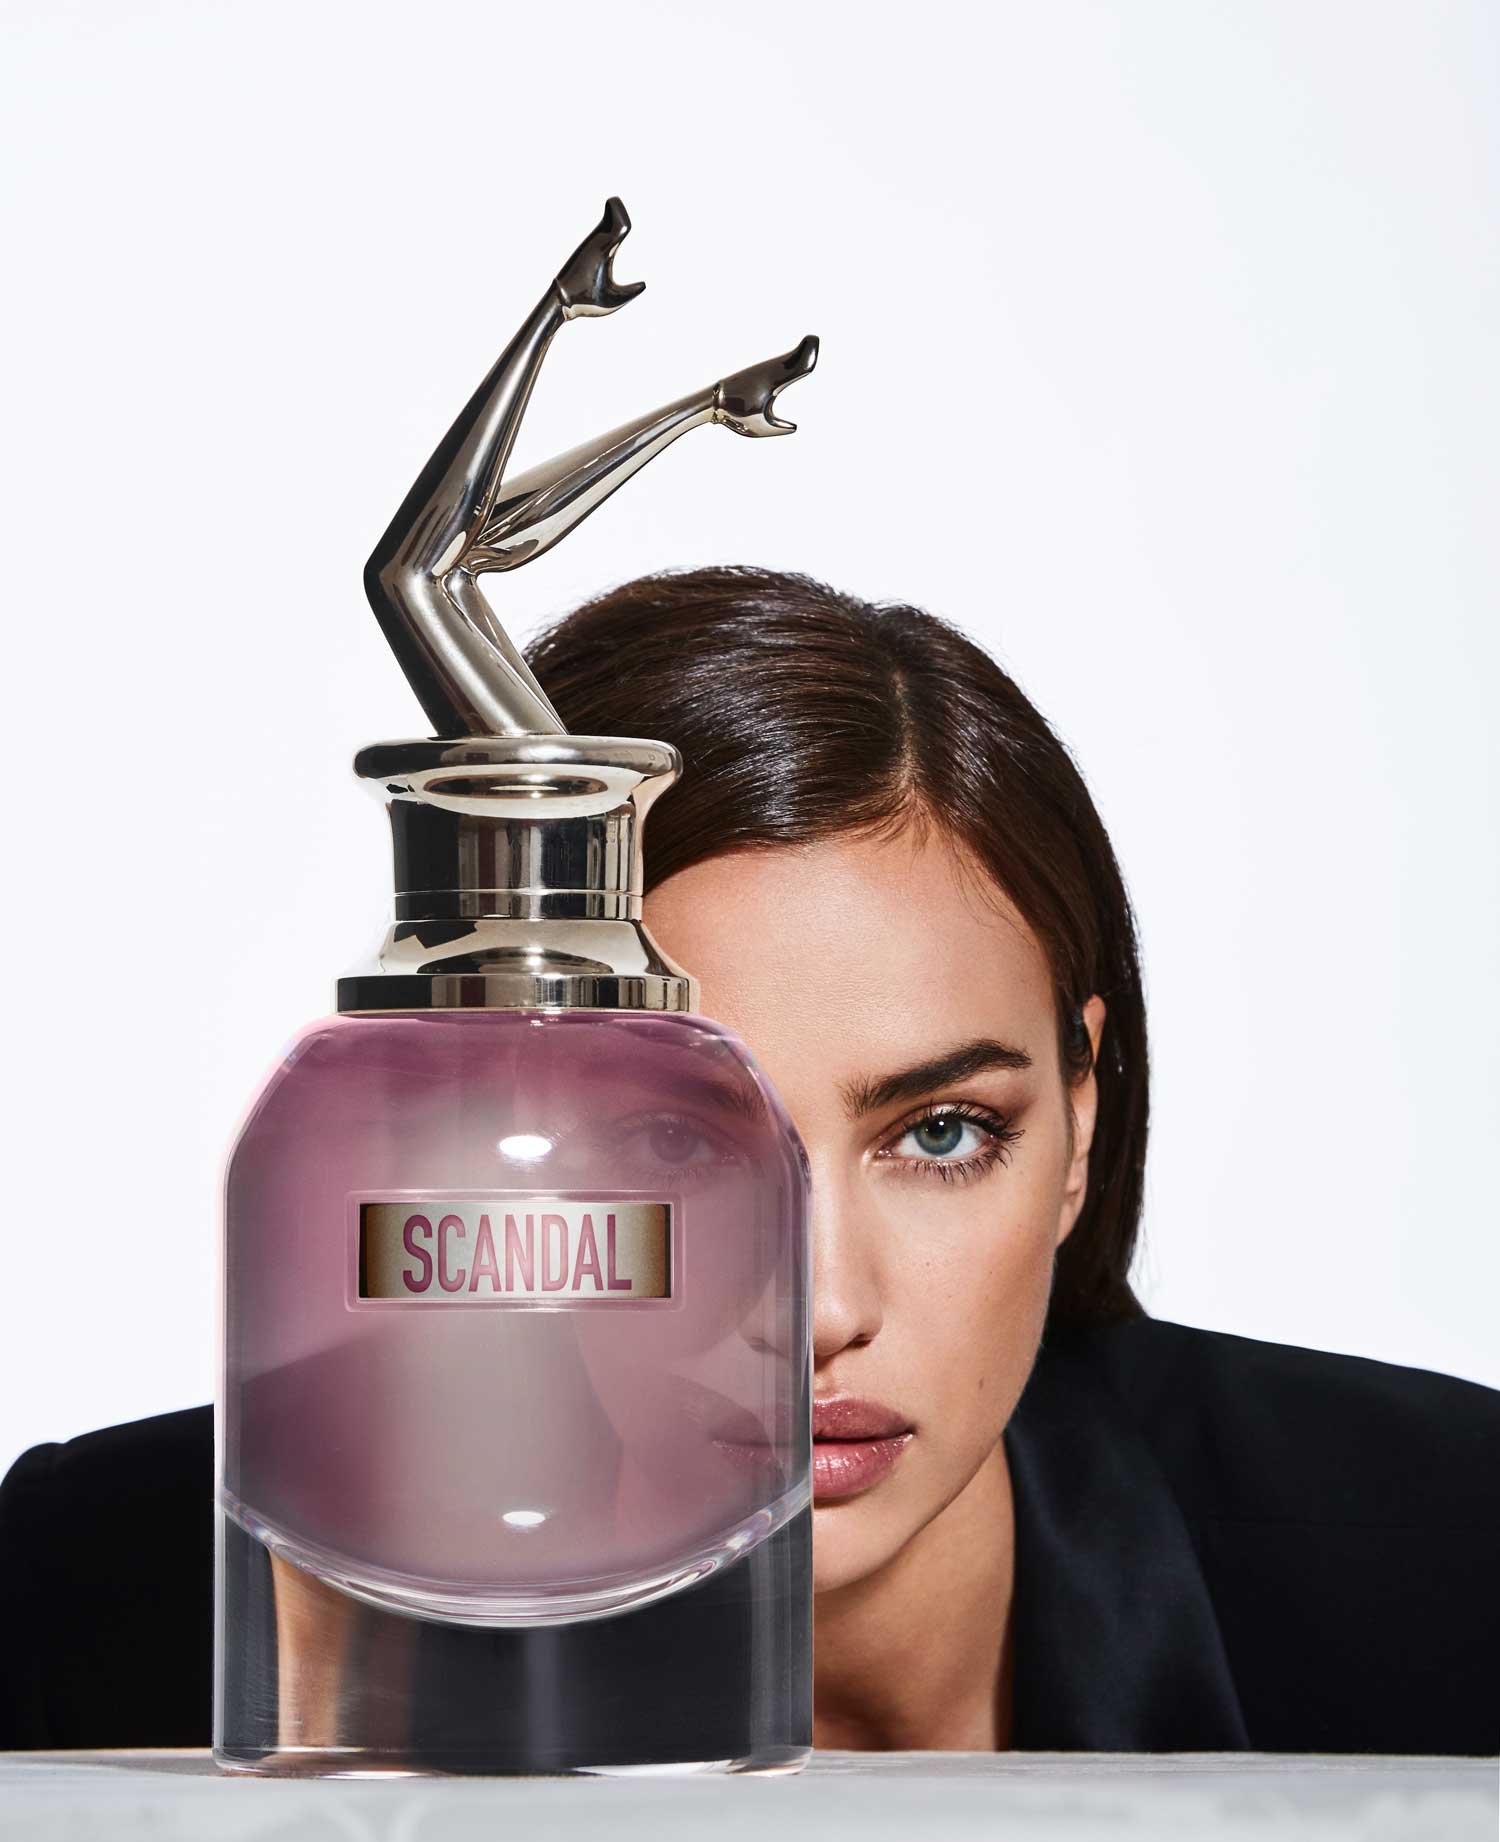 Nuove Di A Jean Paris ~ Gaultier Fragranze Paul Scandal 35l1cTKuFJ